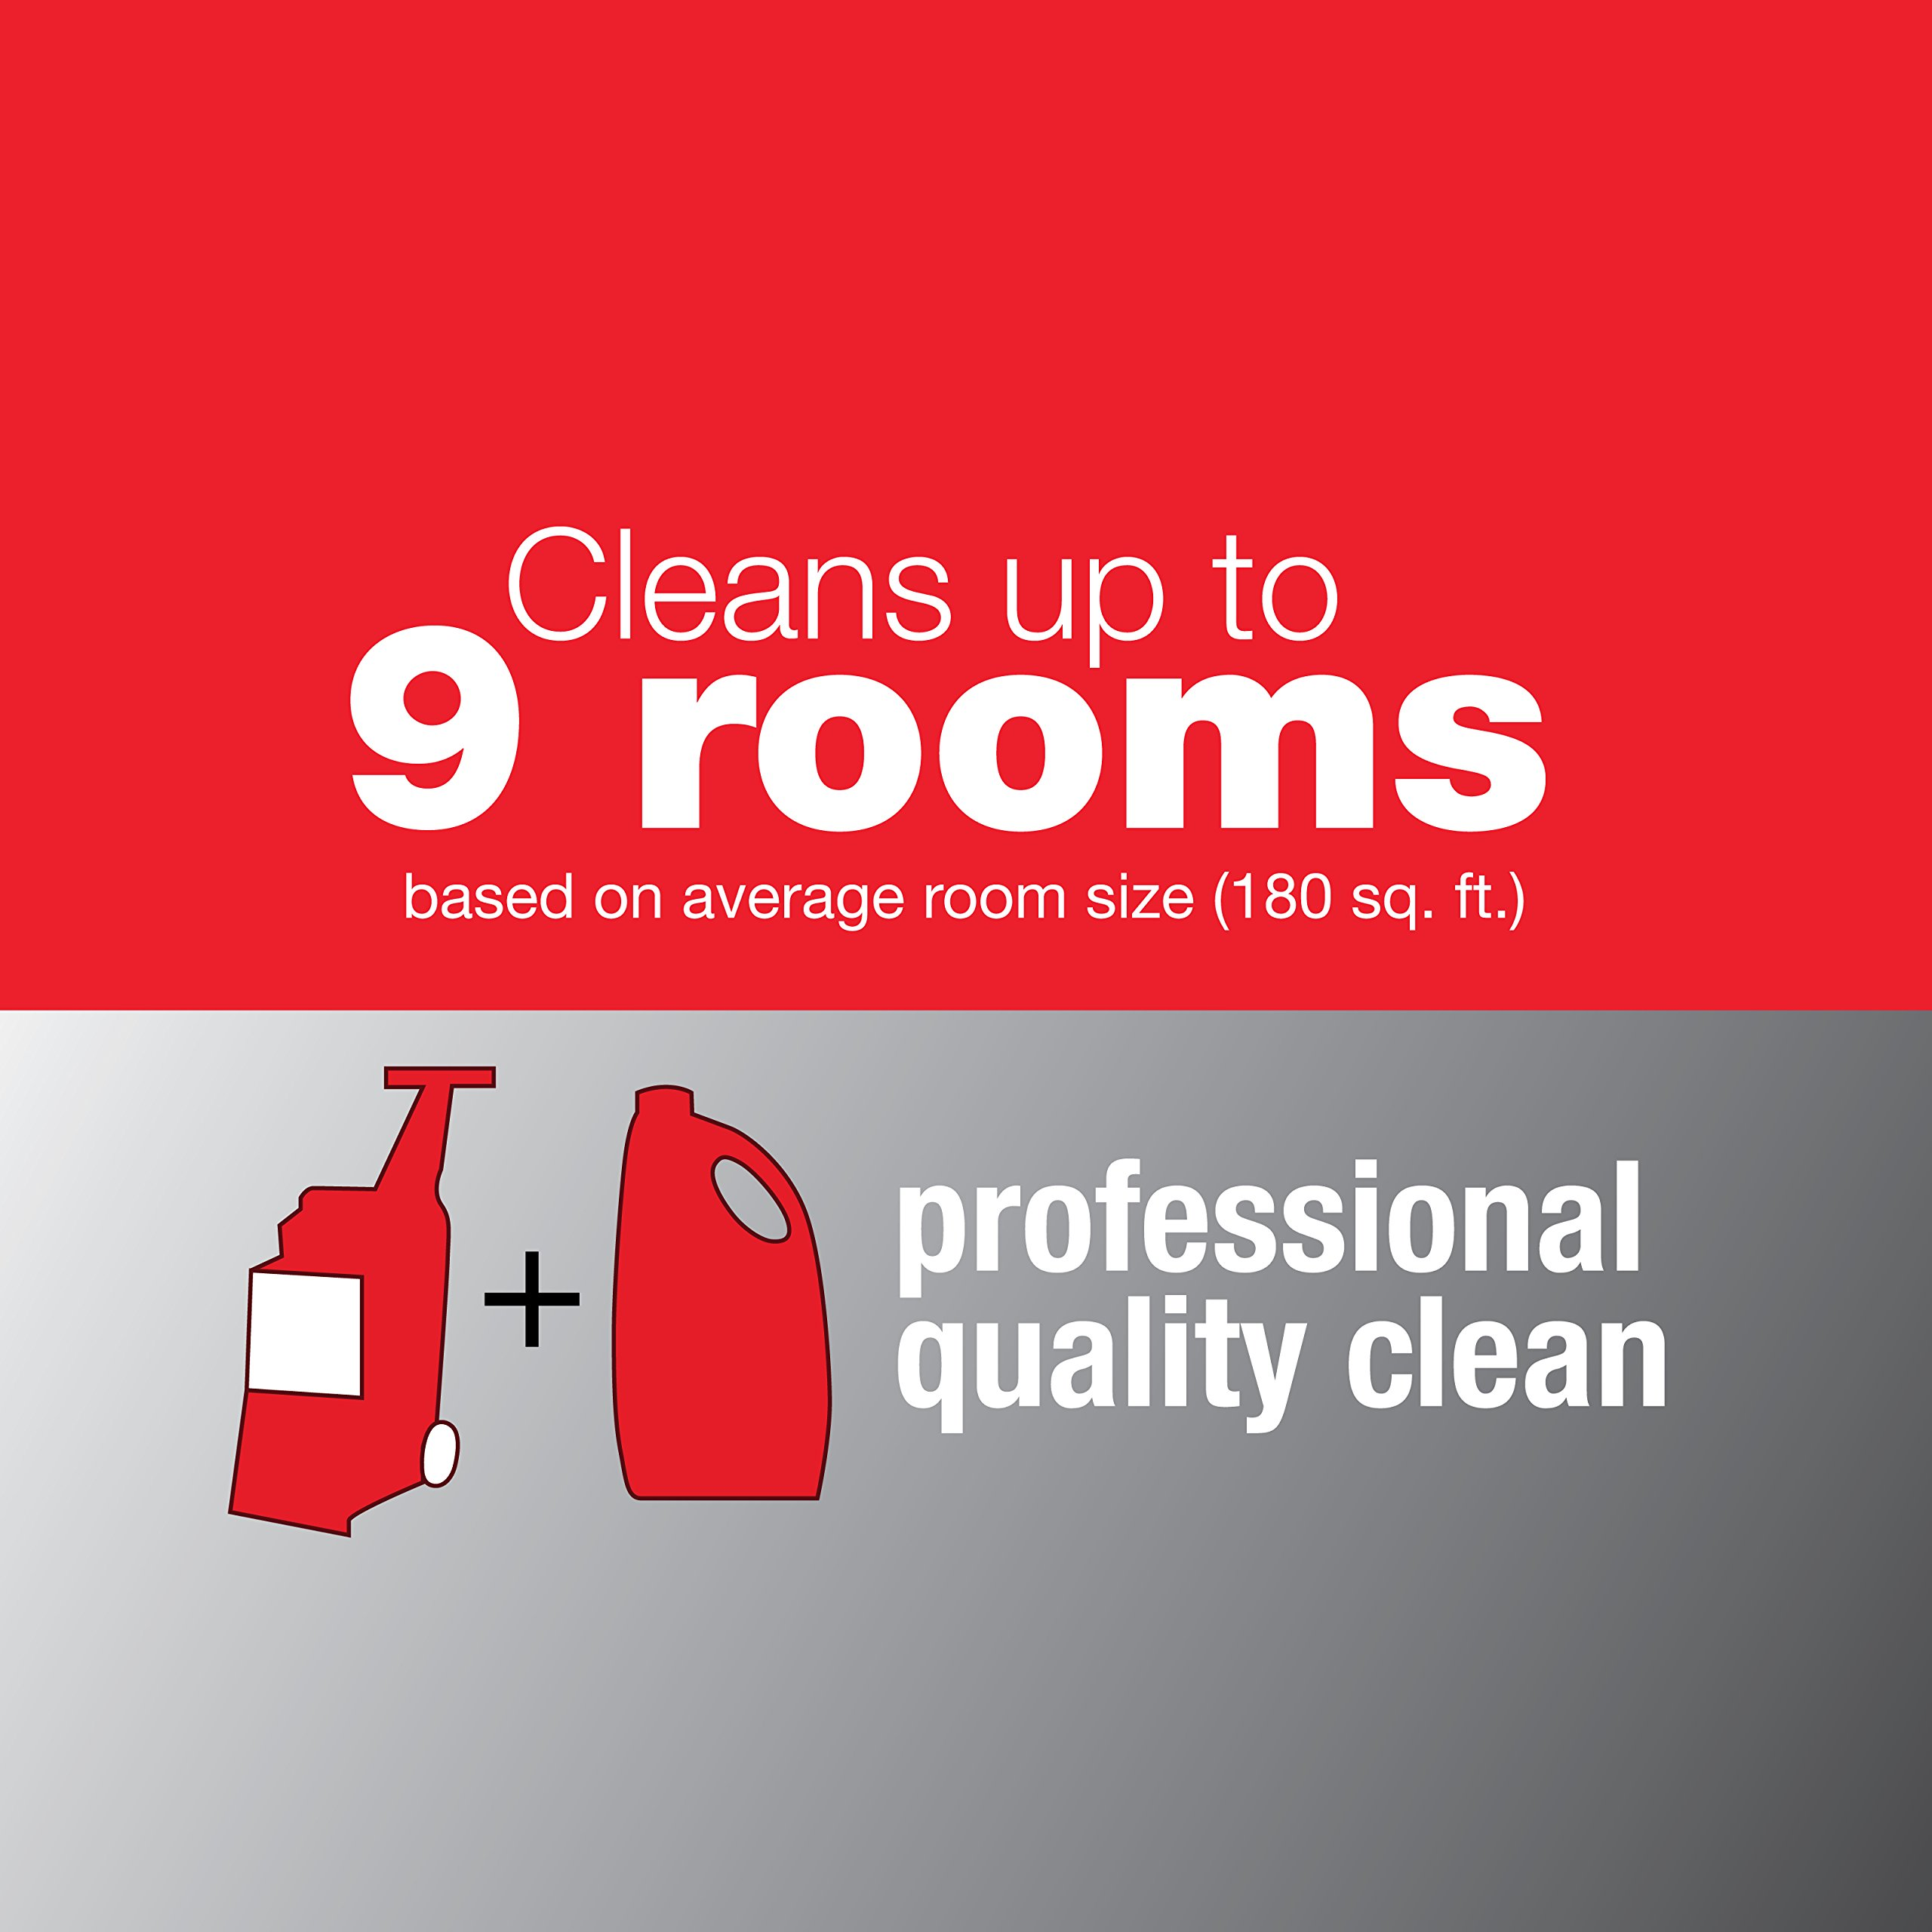 Rug Doctor Oxy Deep Cleaner Solution for Rental Cleaners, Non-Toxic Deodorizing Formula with Oxygen Power to Lift Stains and Spots, 96 oz. by Rug Doctor (Image #8)